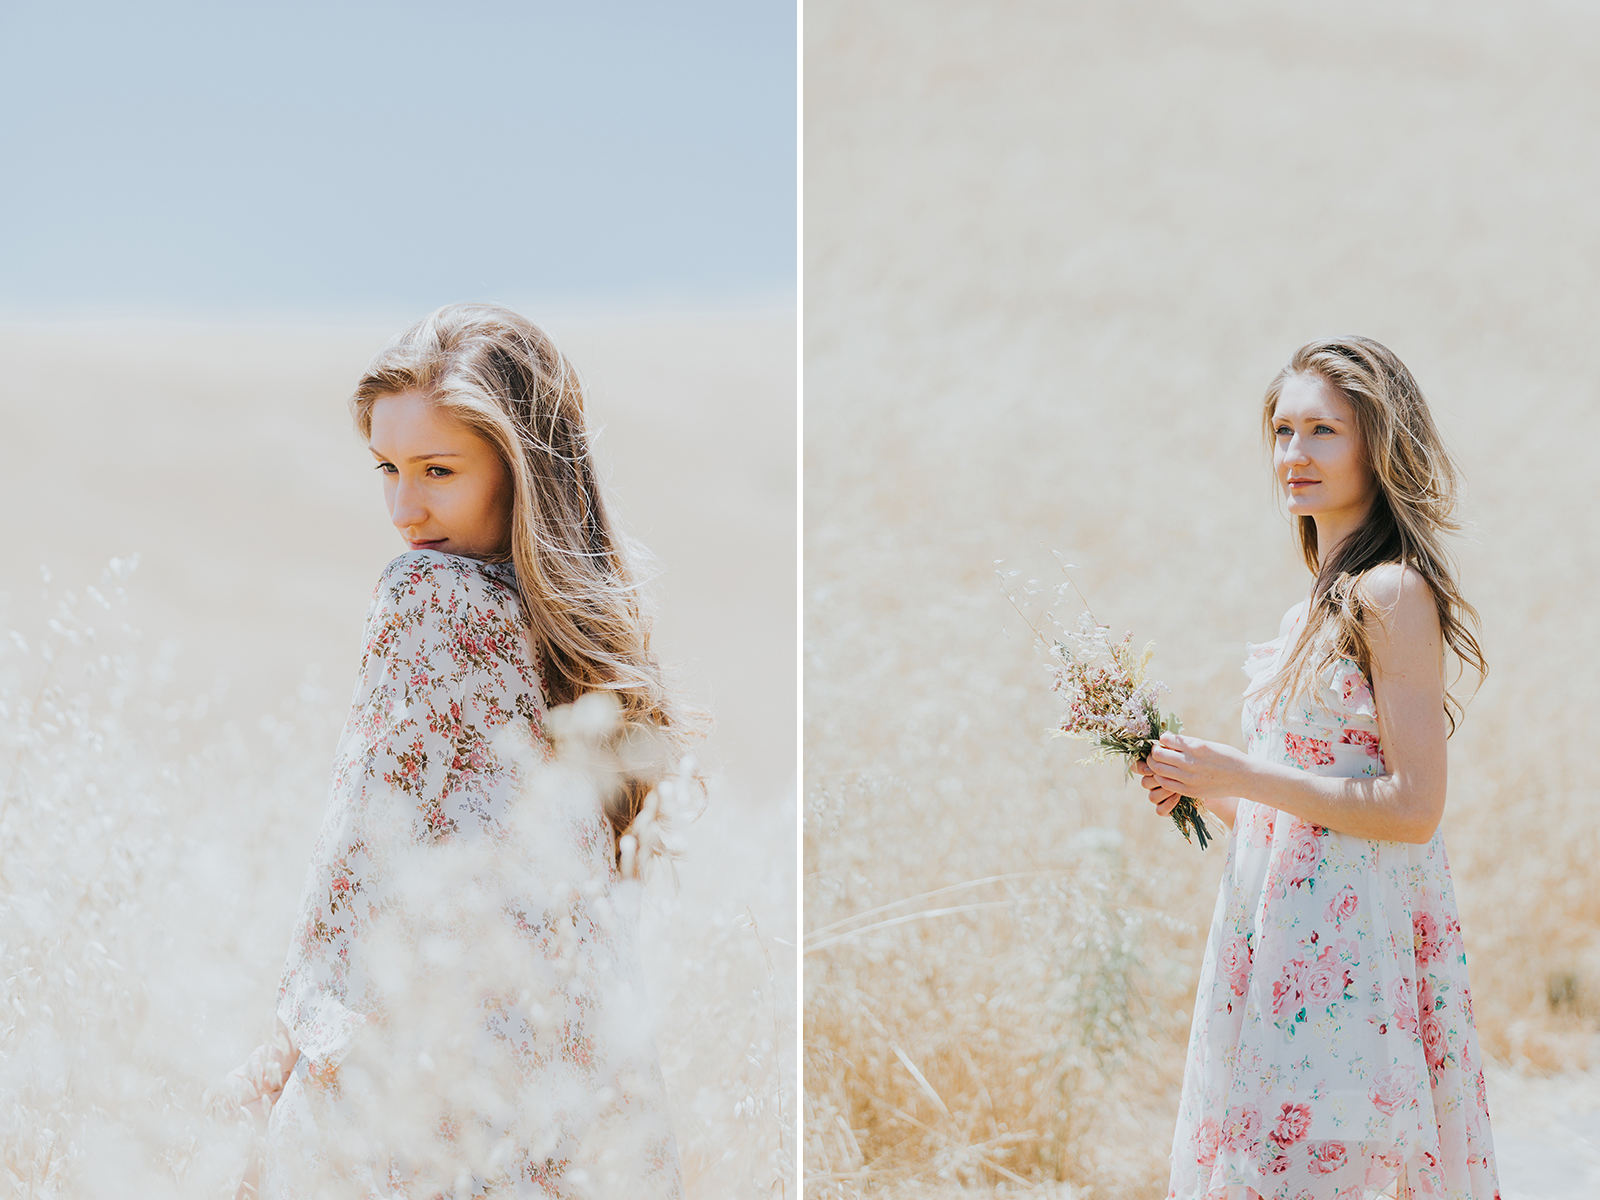 portrait-photographer-fields-orange-county-ca-hannah-5